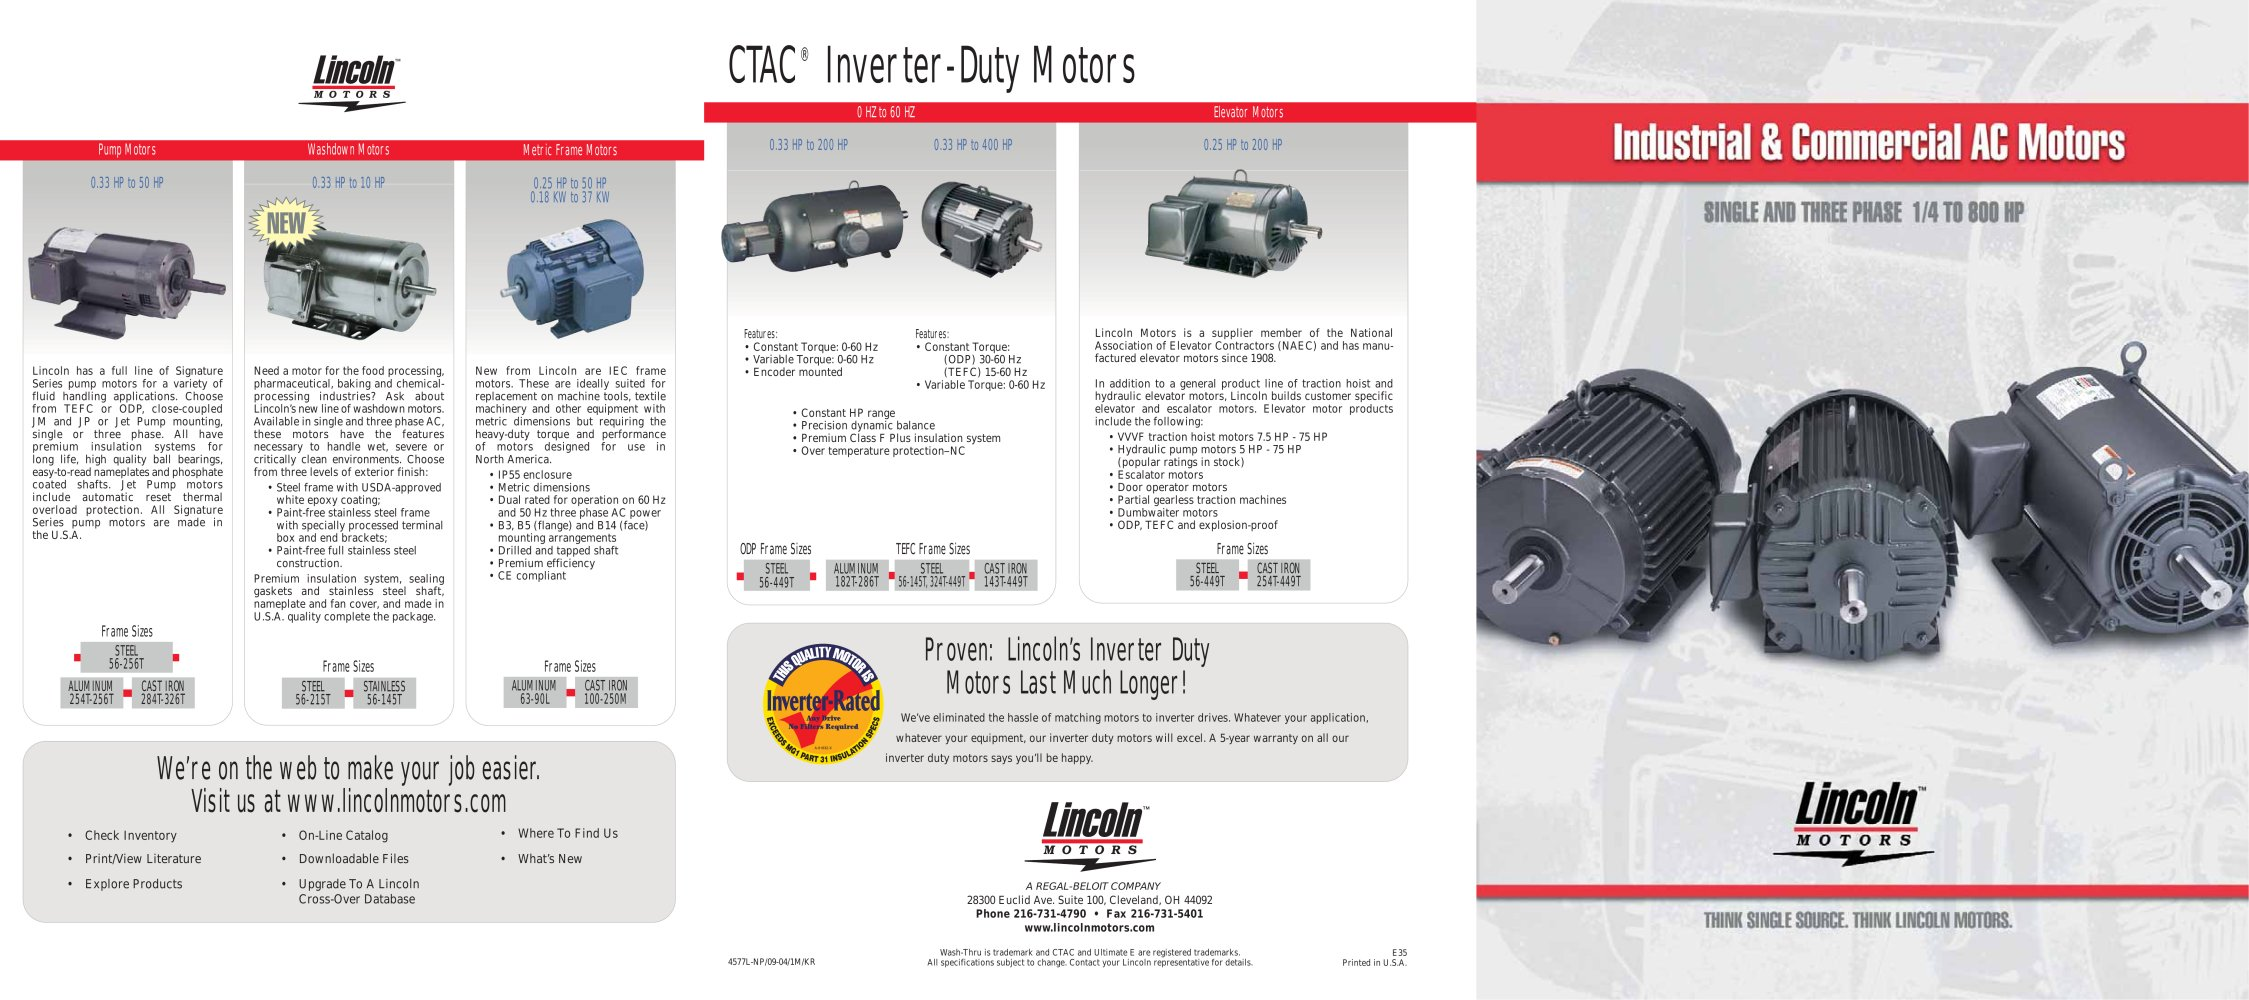 Lincoln Industrial & Commercial AC Motors - LEESON Electric - PDF ...